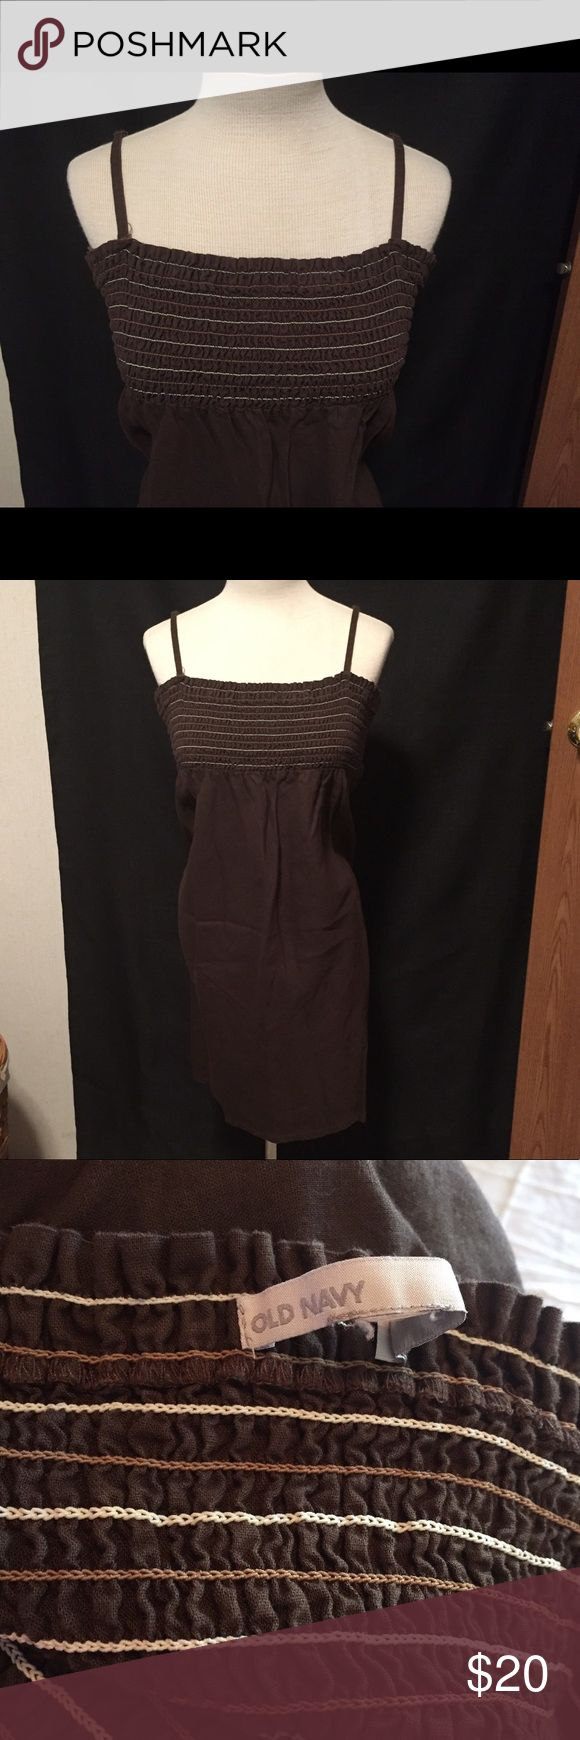 Old Navy spaghetti strap dress or swim cover up This is an adorable chocolate brown cotton dress with a flattering elastic ruched bust in tan and cream thread. This looks great with wedges and a cardigan or jean jacket for a cute summer work outfit or dress down over your bathing suit and flip flops! Very versatile piece- size part of tag is ripped off but it is a ladies size large. Make me an offer or bundle to save!! Old Navy Dresses